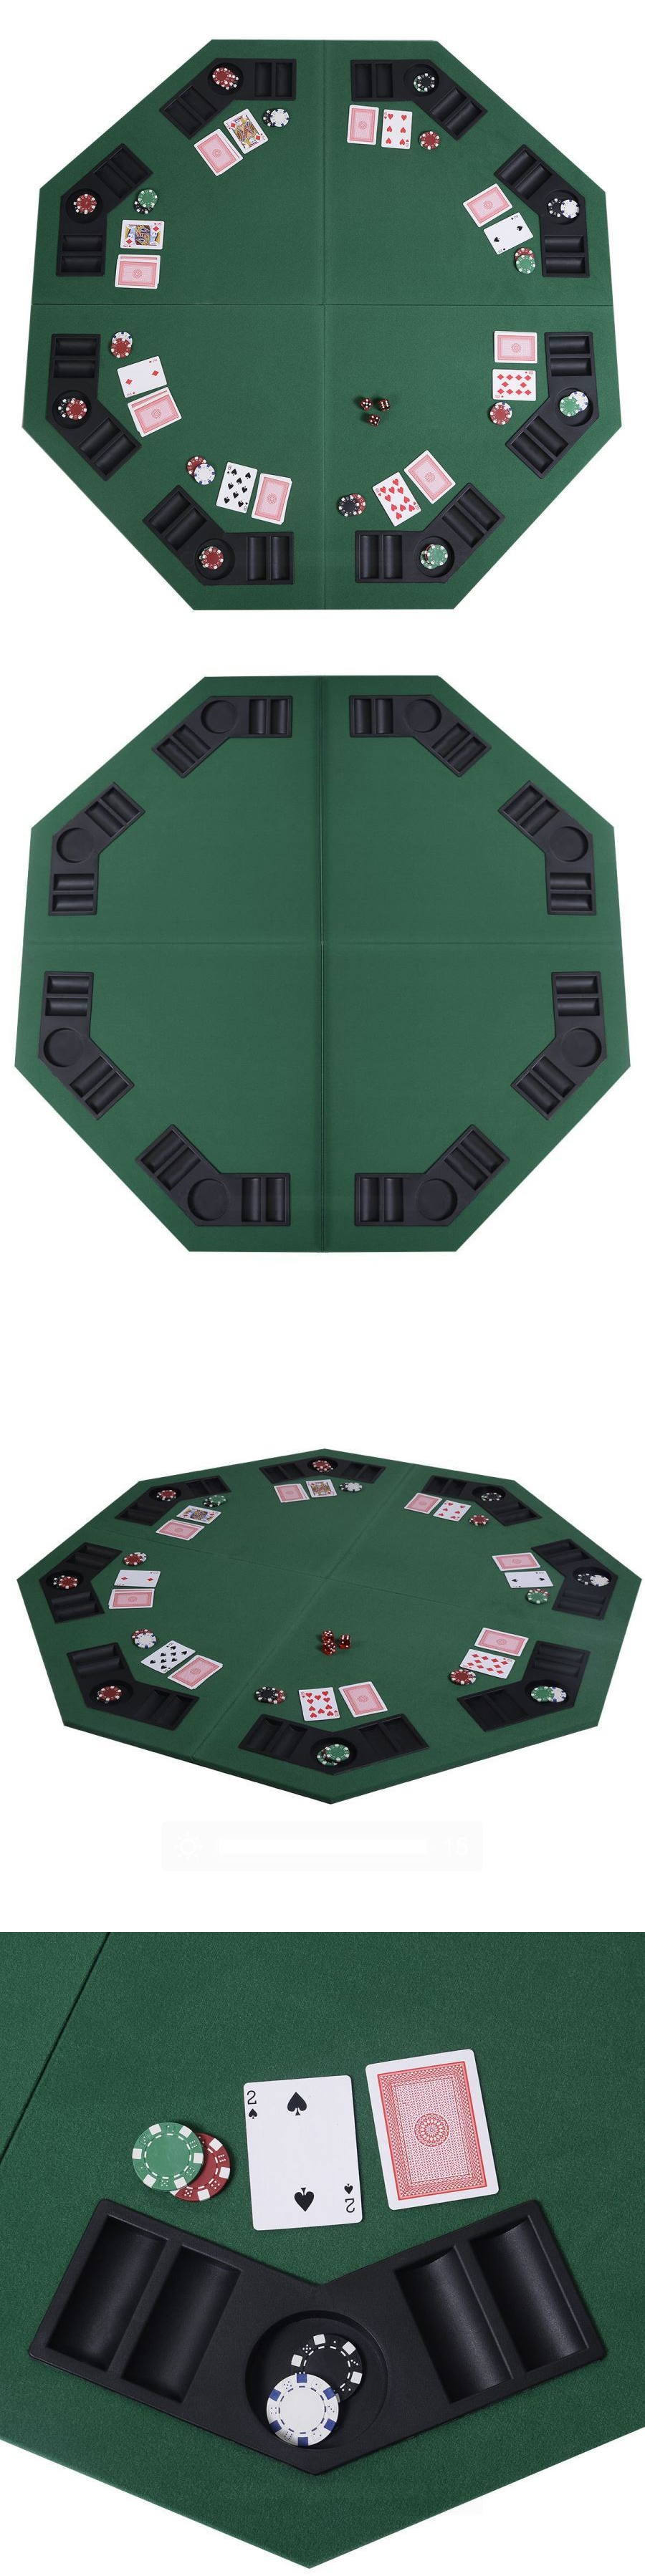 Card Tables And Tabletops 166572: 48 Green Poker Table Top 8 Player Folding  Octagon Poker